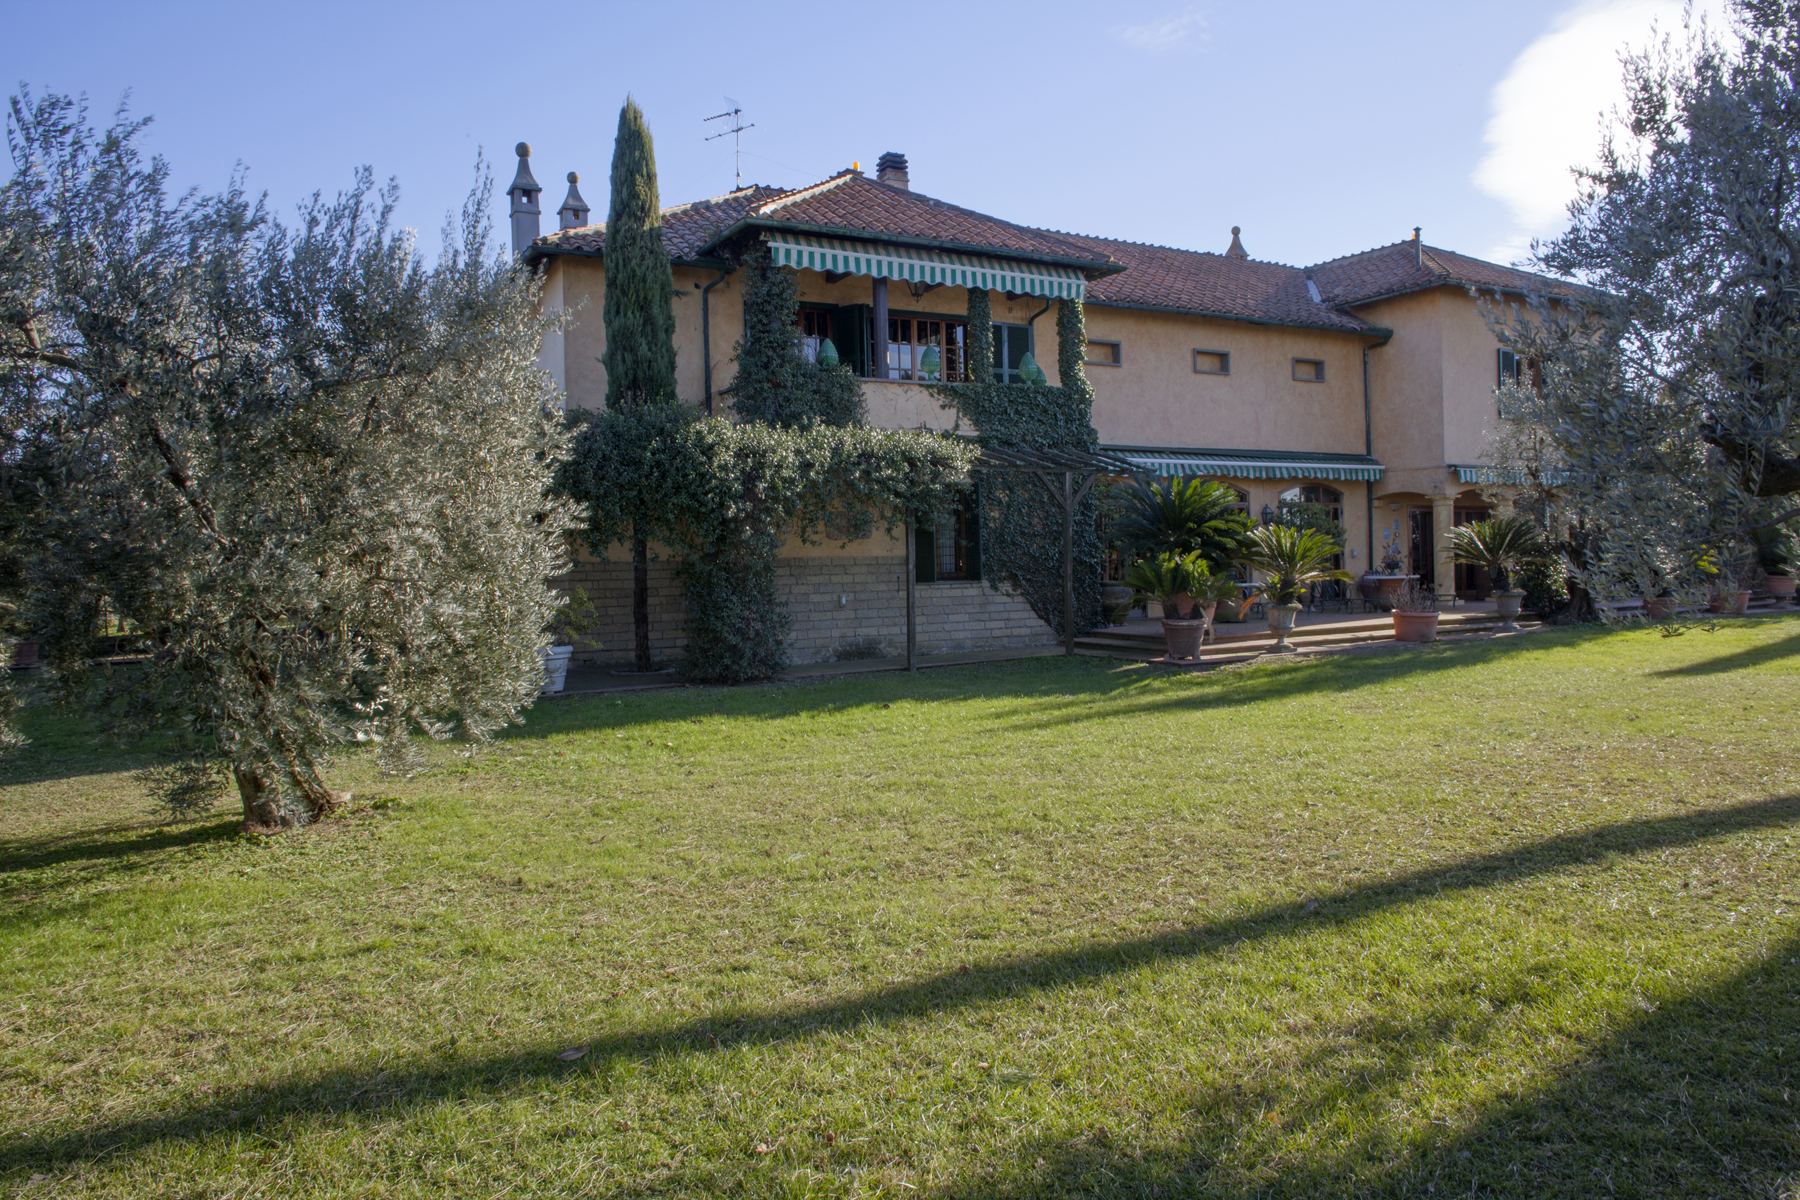 Additional photo for property listing at Magnificent Villa in the Castelli Romani with pool Via Giovanni Pascoli Marino, Rome 00047 Italie